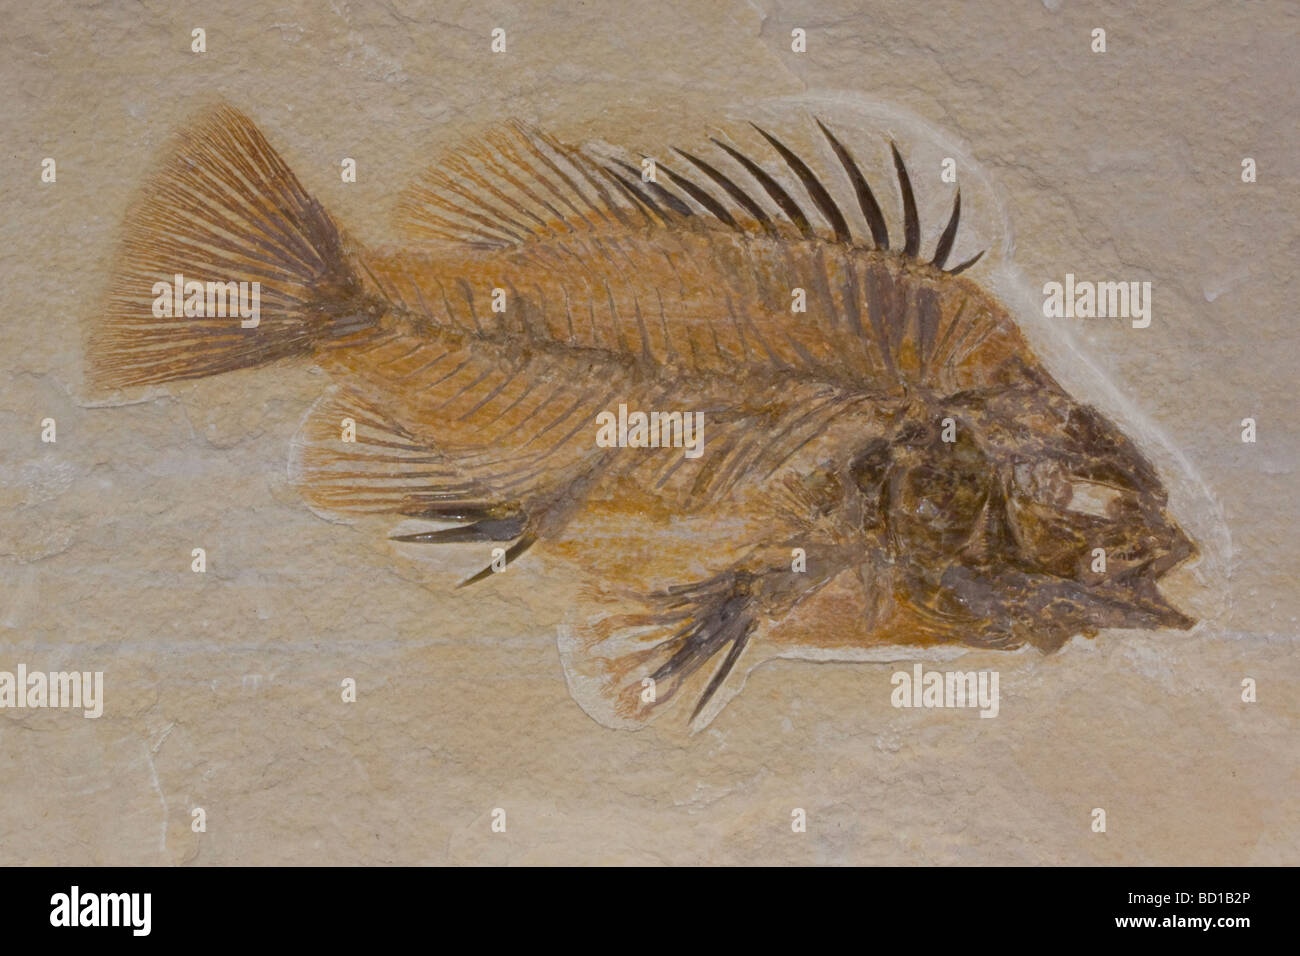 Fossil fish - Stock Image